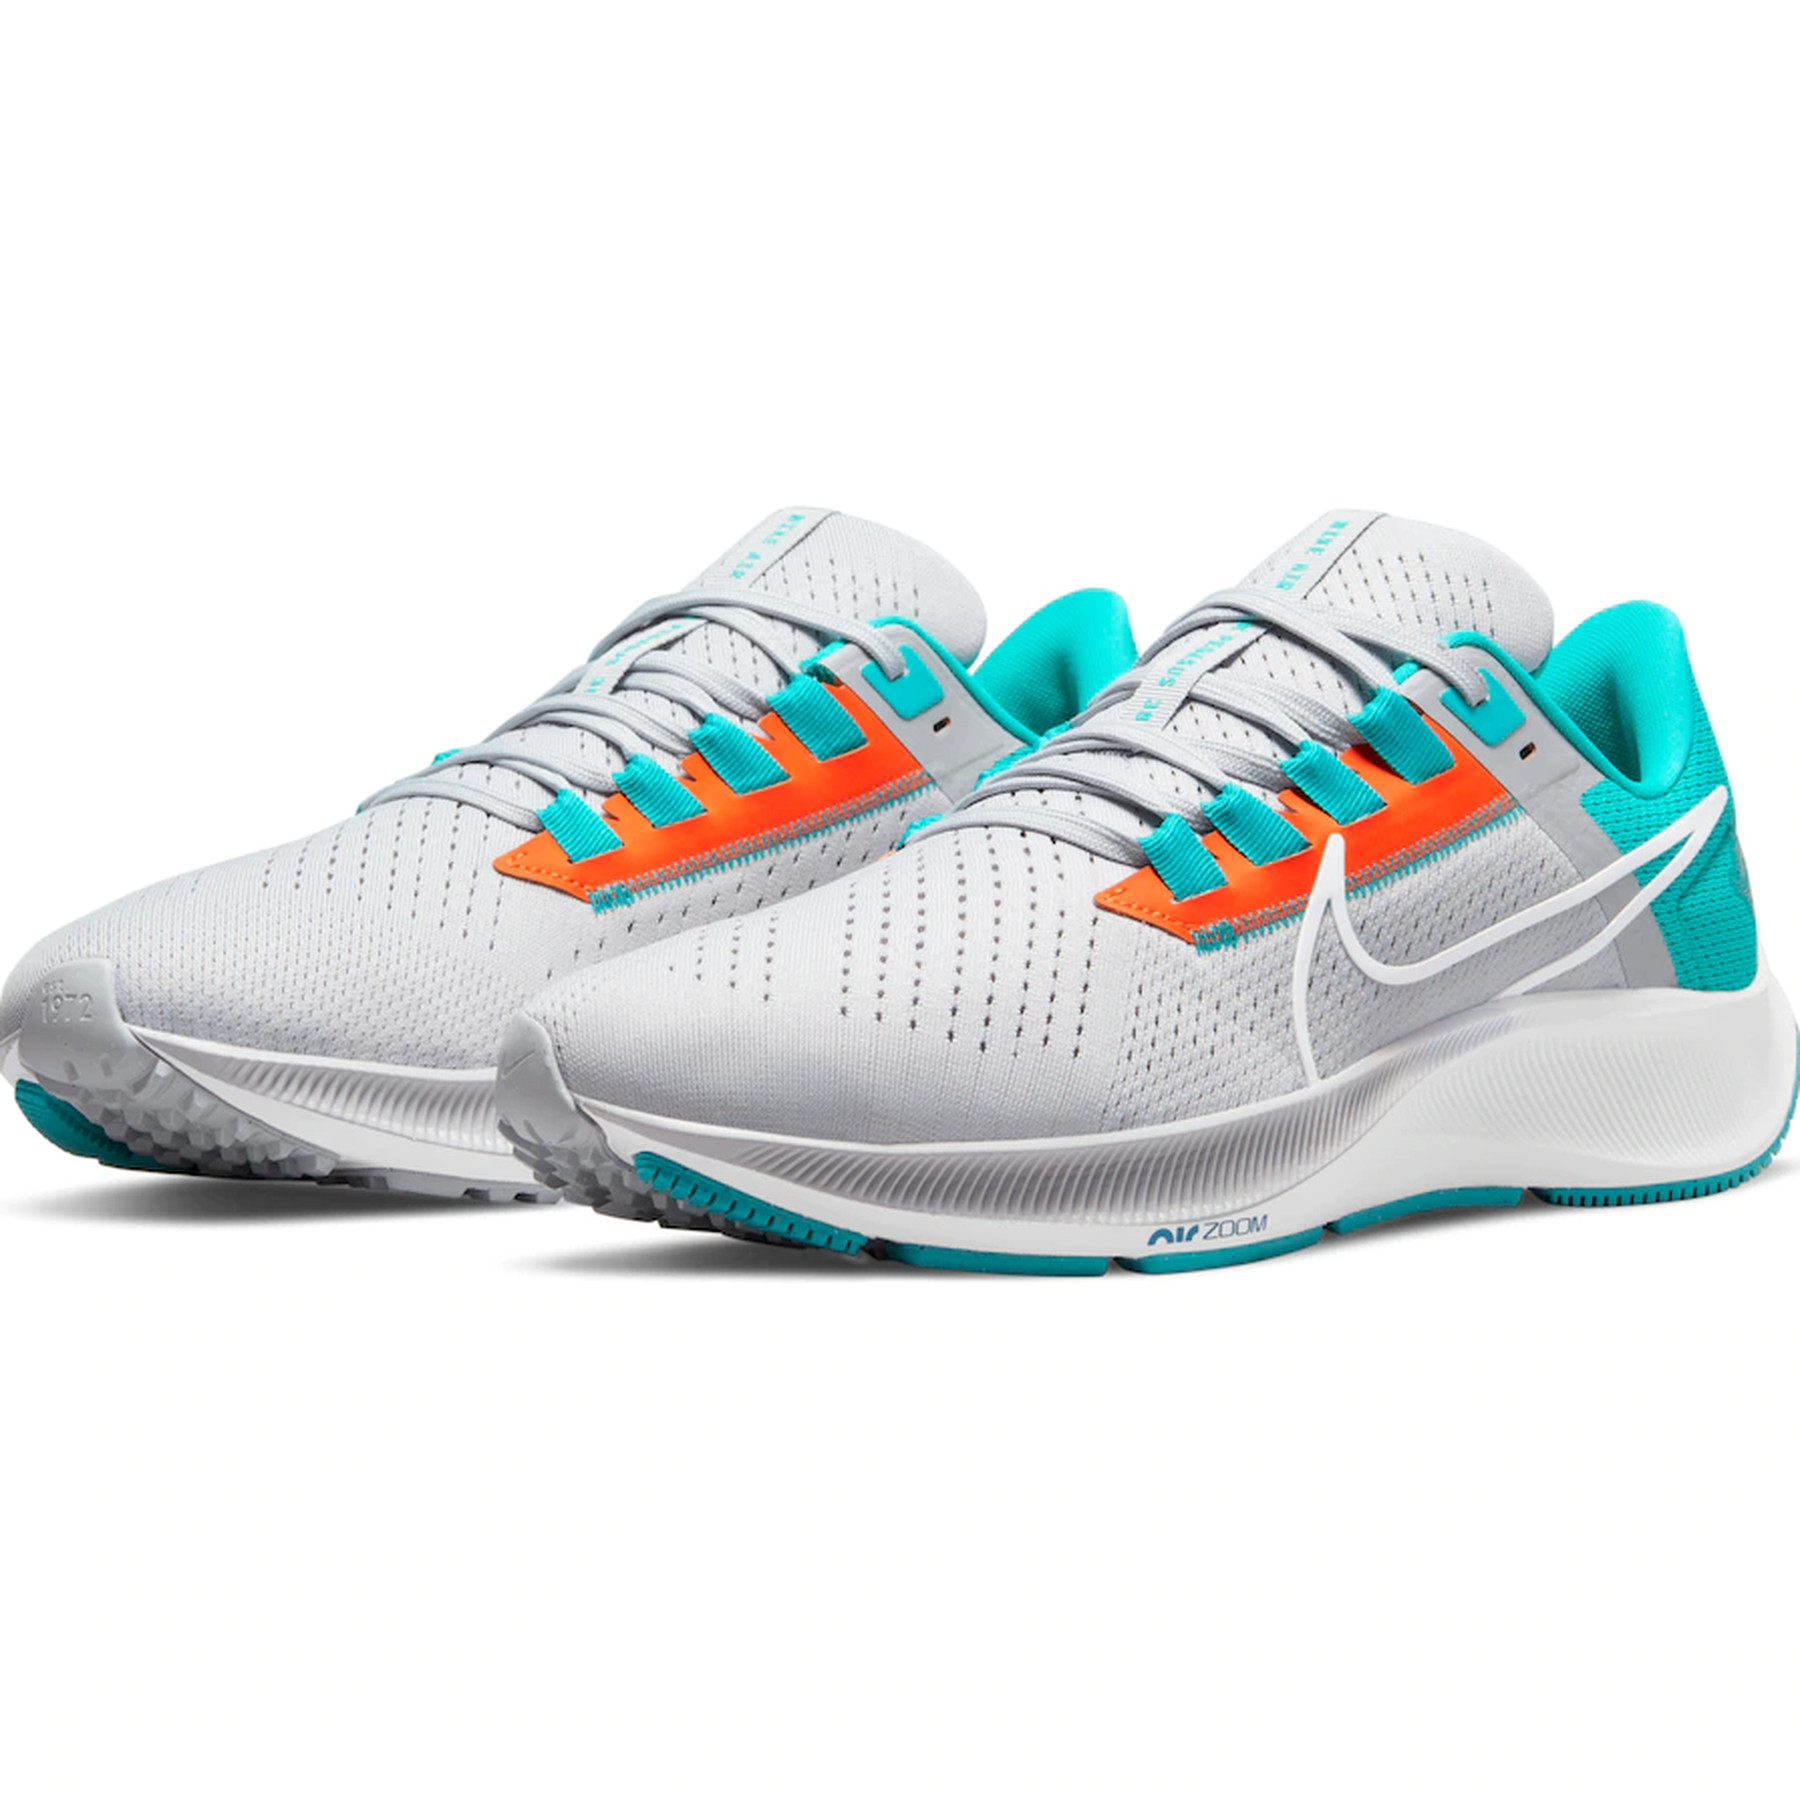 Miami Dolphins Nike Air Zoom Pegasus 38 is here! - The Phinsider